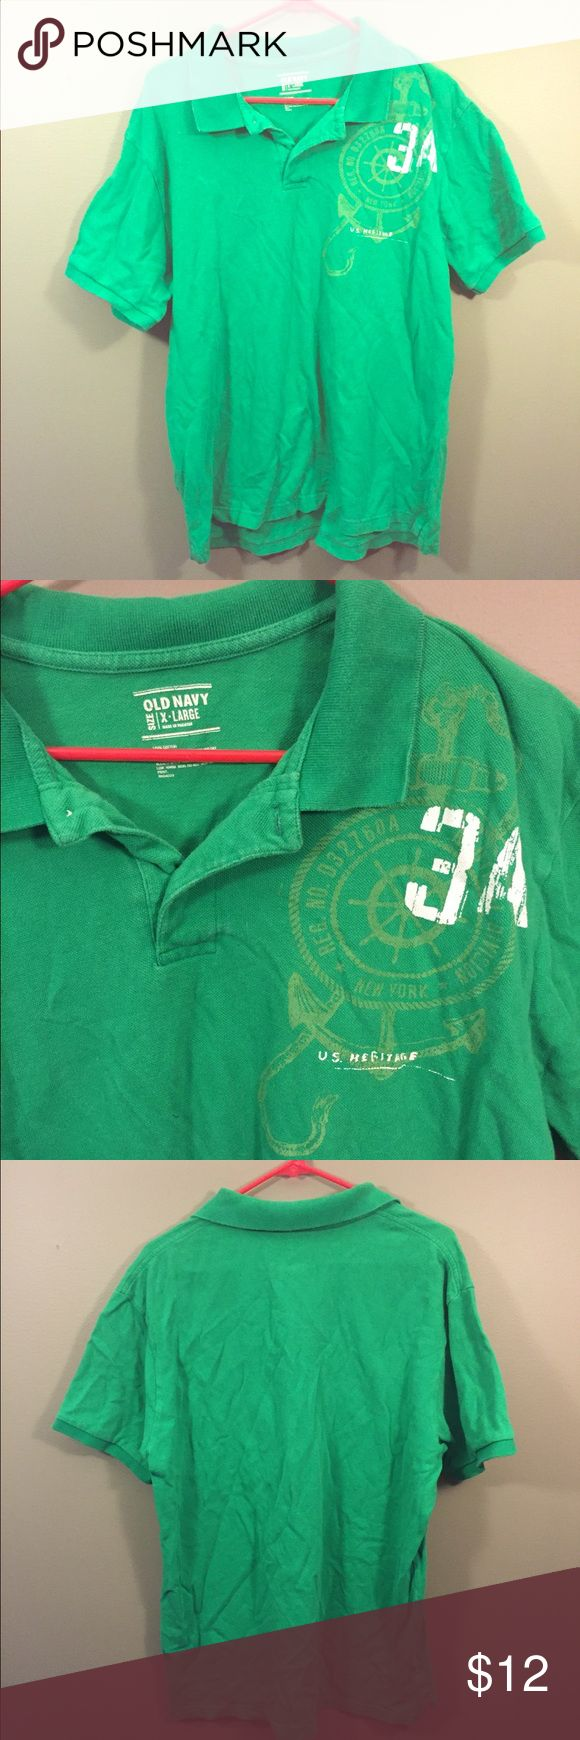 Old Navy Green Polo Shirt Sz XL Good condition! Thank you for looking! Old Navy Shirts Polos